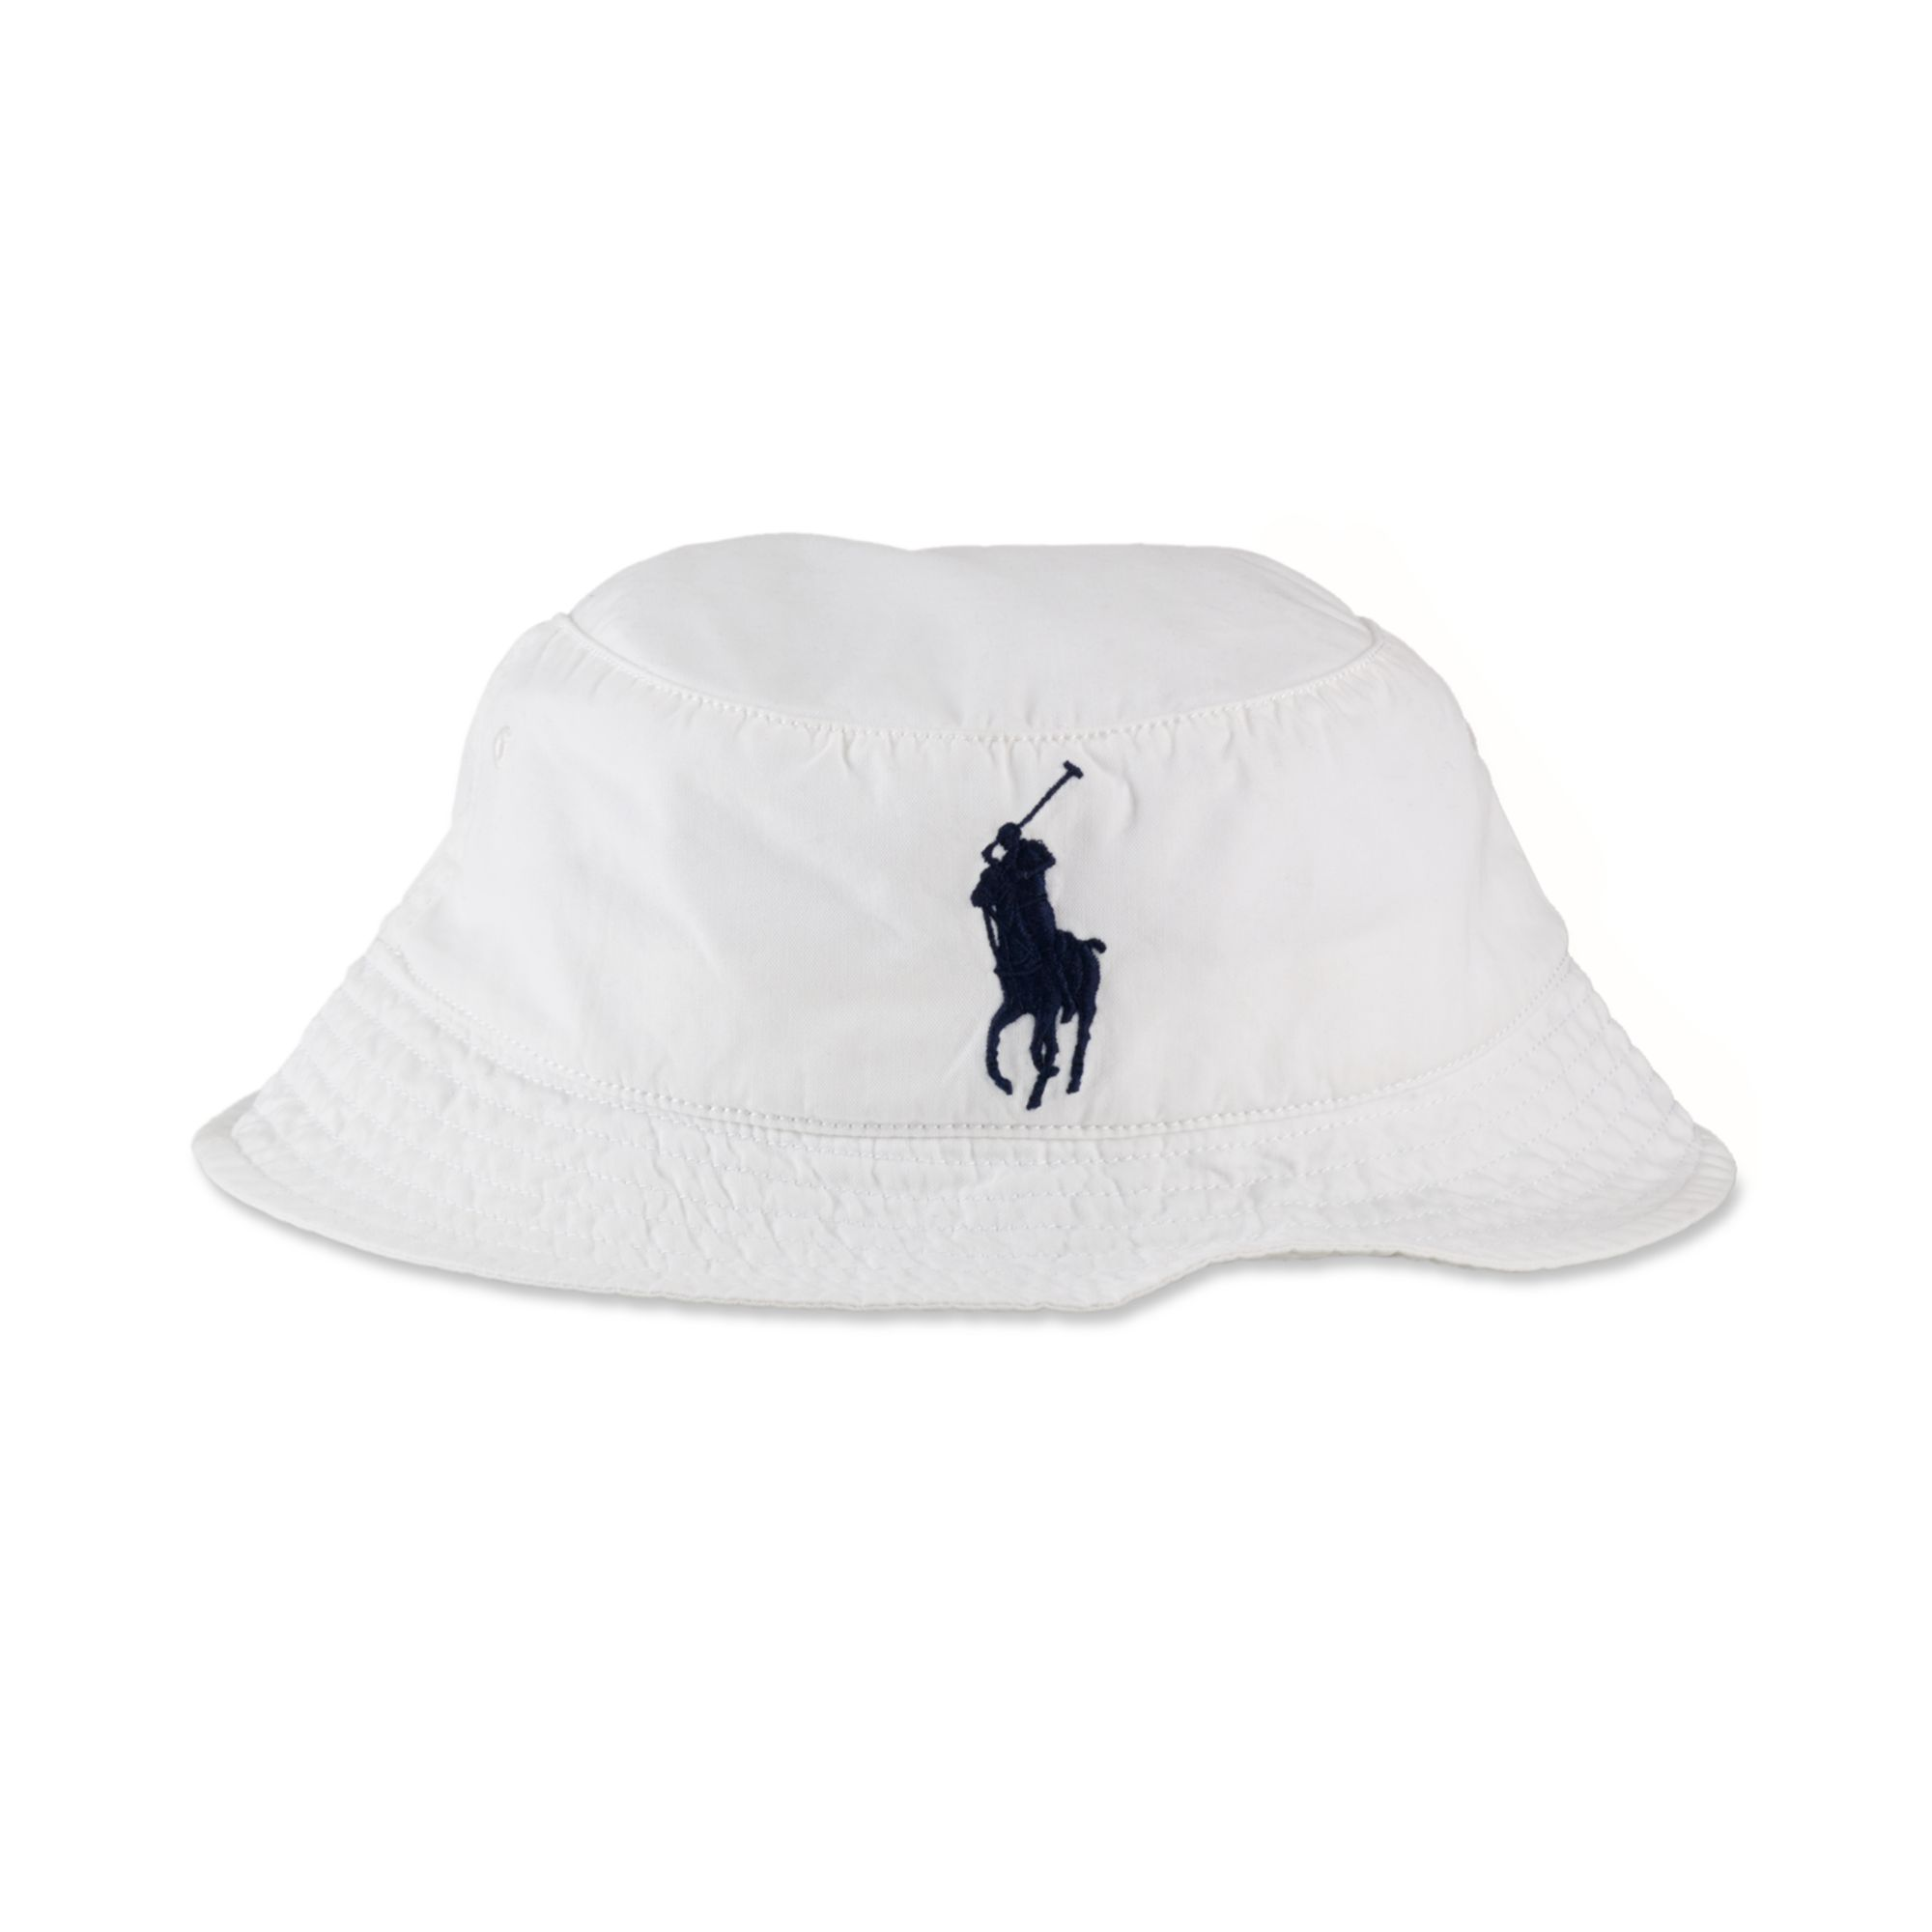 Lyst - Ralph Lauren Bucket Hat in White for Men 45df1c8c8c5